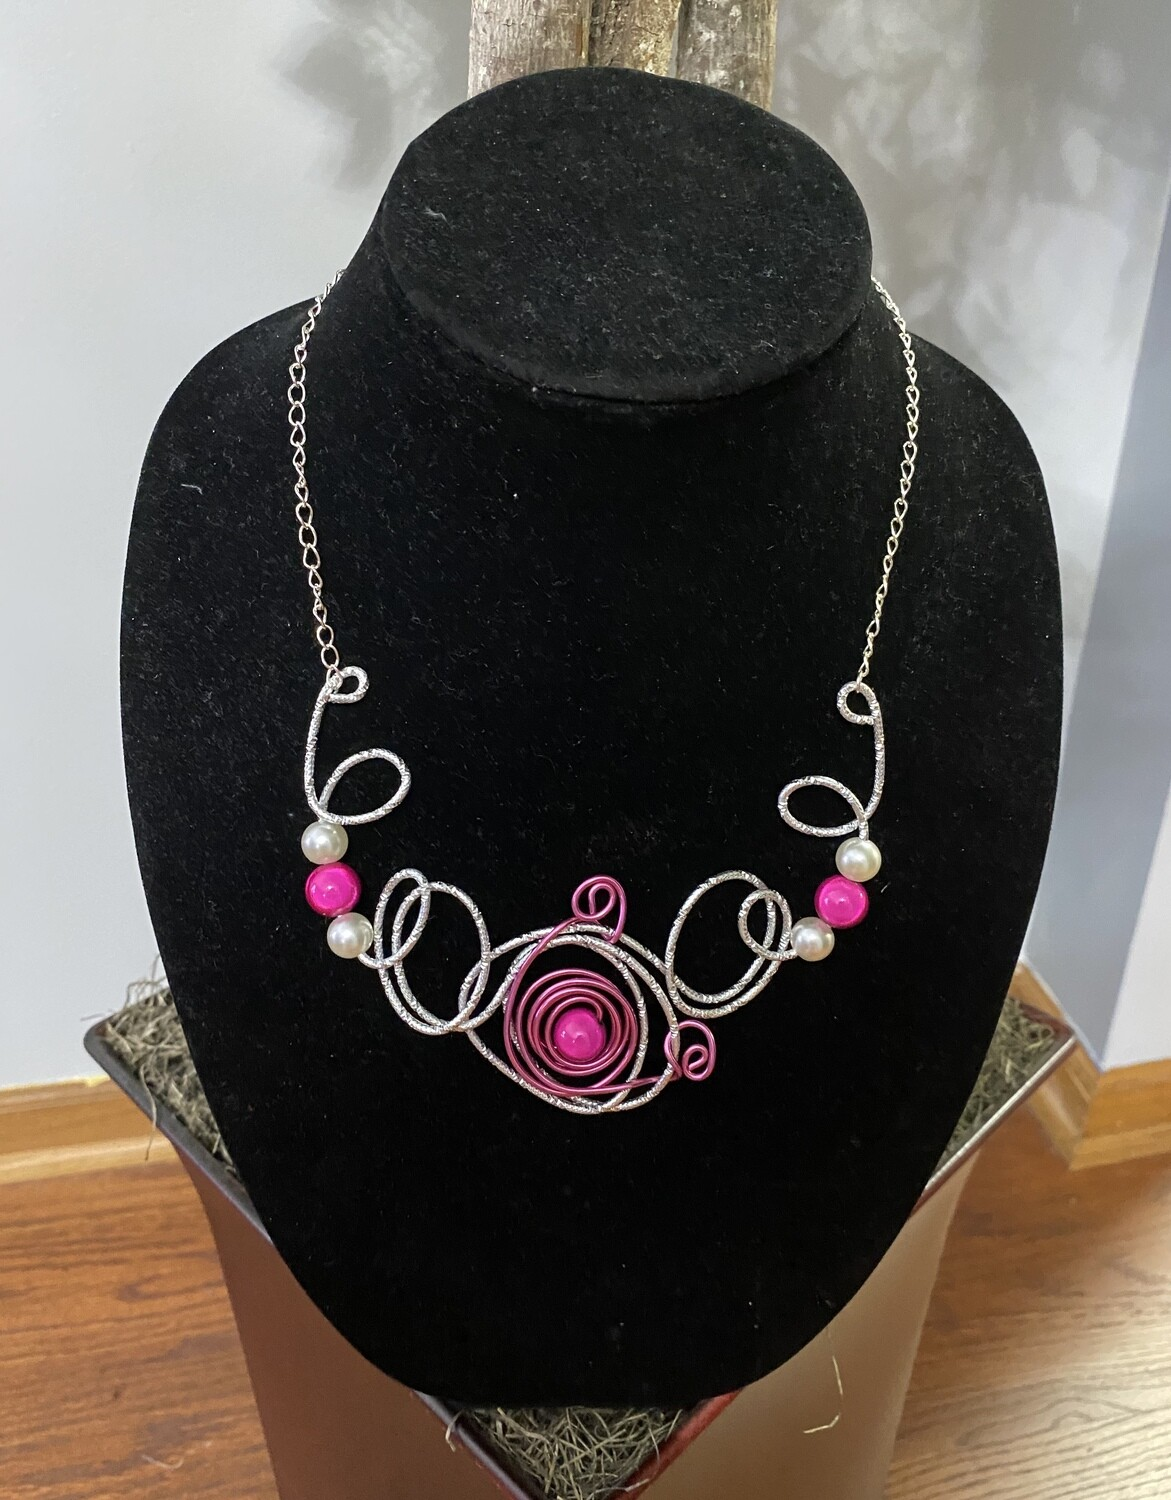 Wired Candy Pink Necklace